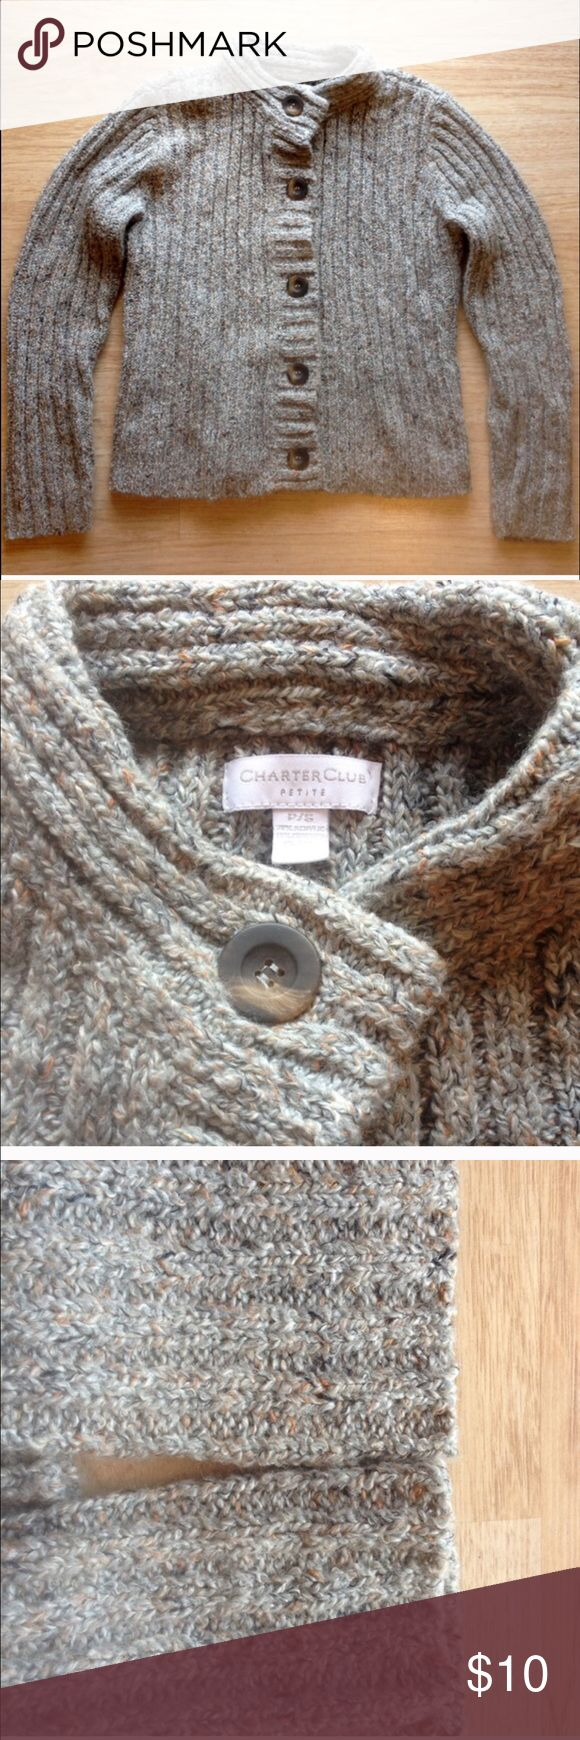 Charter Club wool sweater - very lightly worn Reposting a bundled item that didn't quite work for my fit needs. It's a borderline steel wool/grey-blue base tone to the gray with flecks of rust colored wool. Light weight in feel but real wool warmth. It's a petite length. Charter Club Sweaters Cardigans